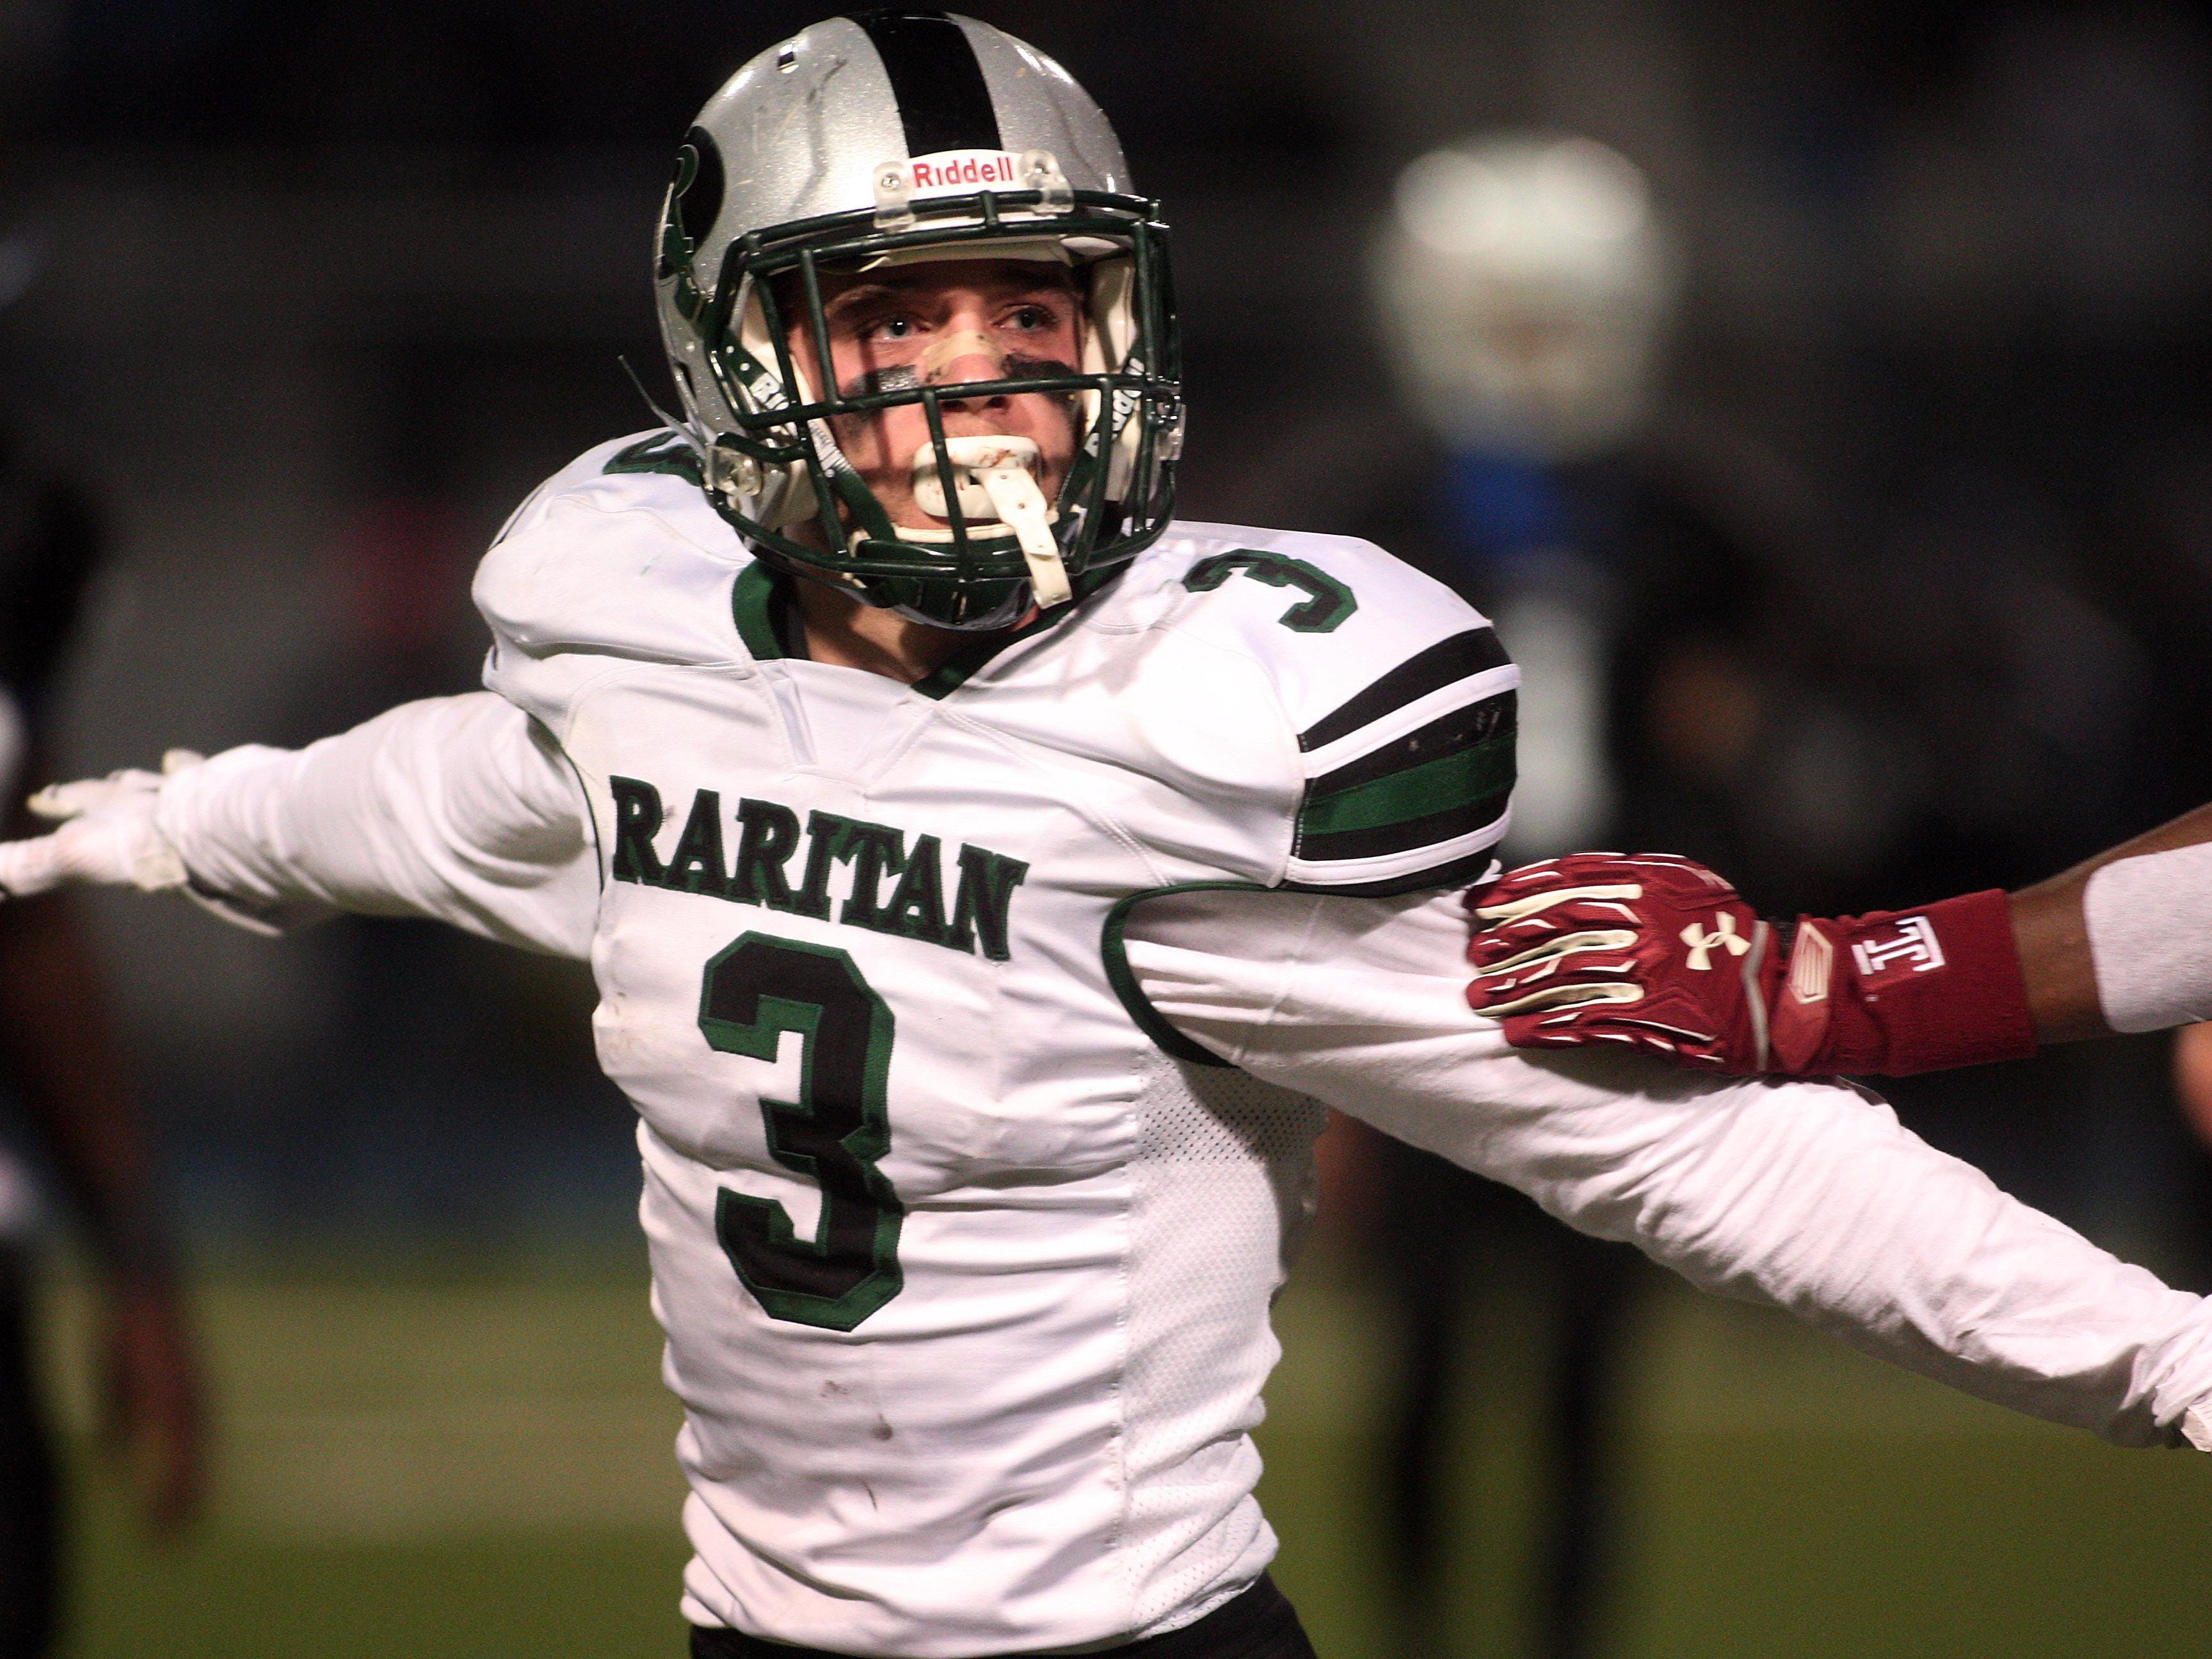 Raritan's Nicholas Pasquin celebrates after stopping a Lincoln receiver for a loss during their NJSIAA Central, Group Two Championship game at Kean University Alumni Stadium. December 5, 2015, Union, NJ.